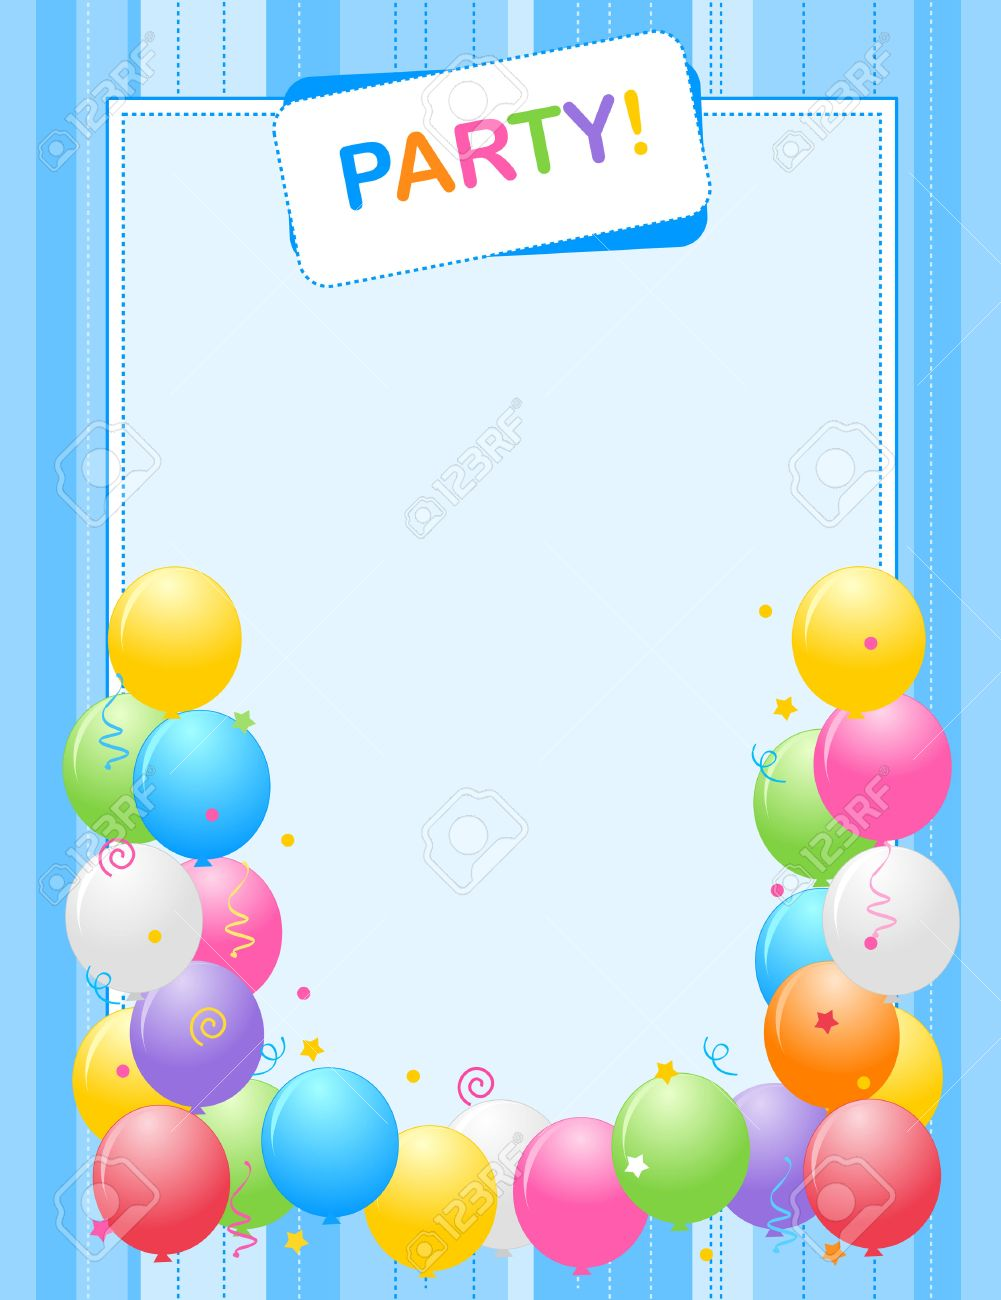 Colorful Balloons Border Frame Illustration For Birthday Cards